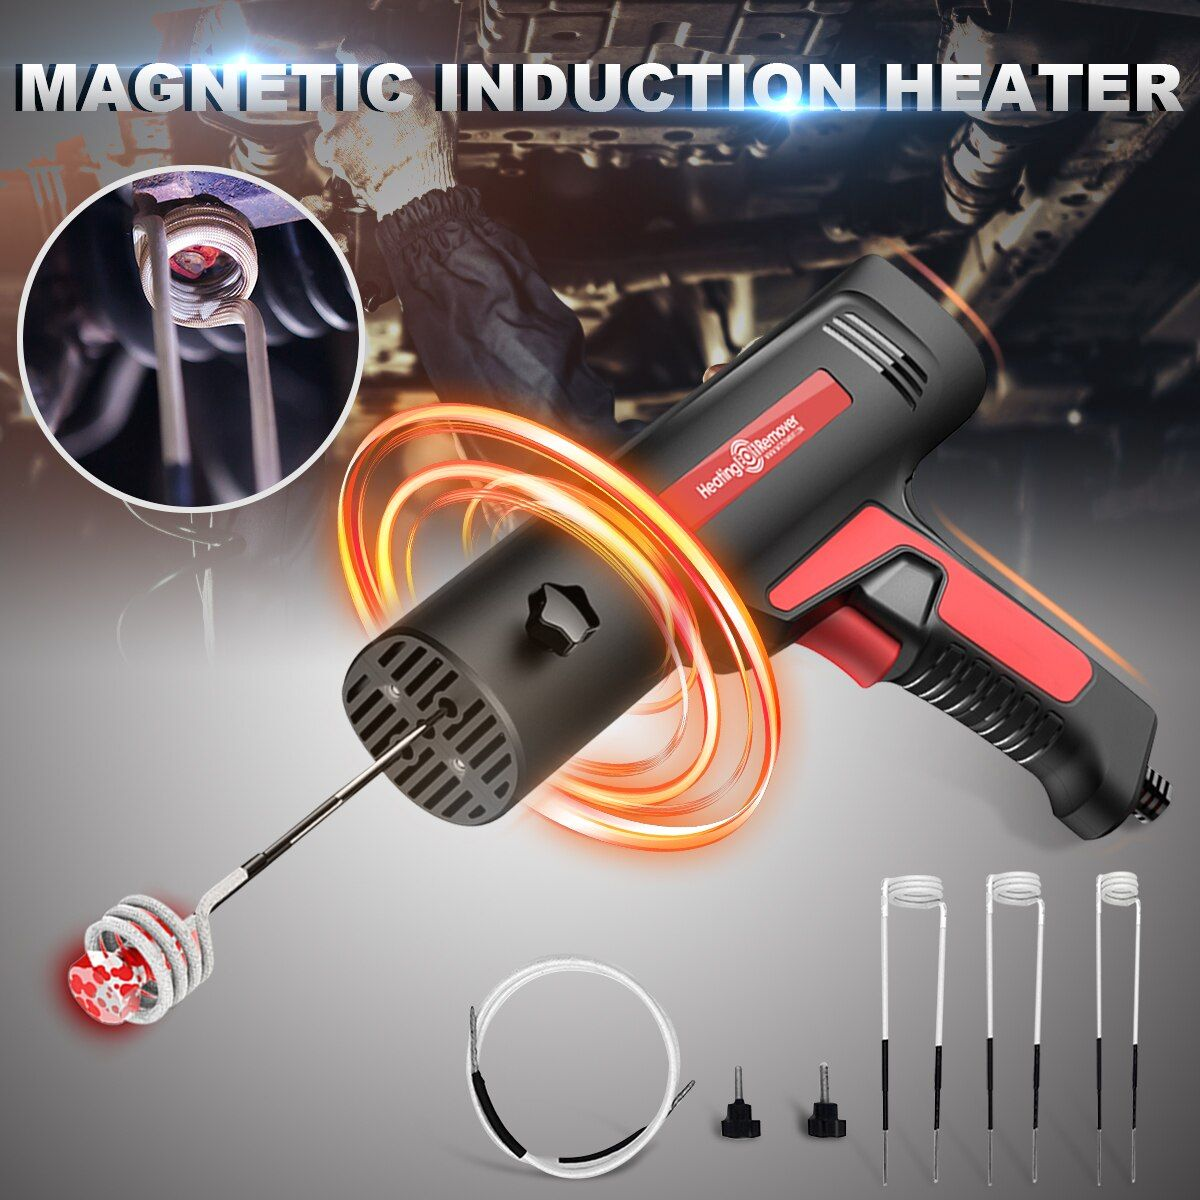 Magnetic Induction Heater Kit For Automotive Flameless Heat 12V-110-220V Repair Car Heating Bolt Remover